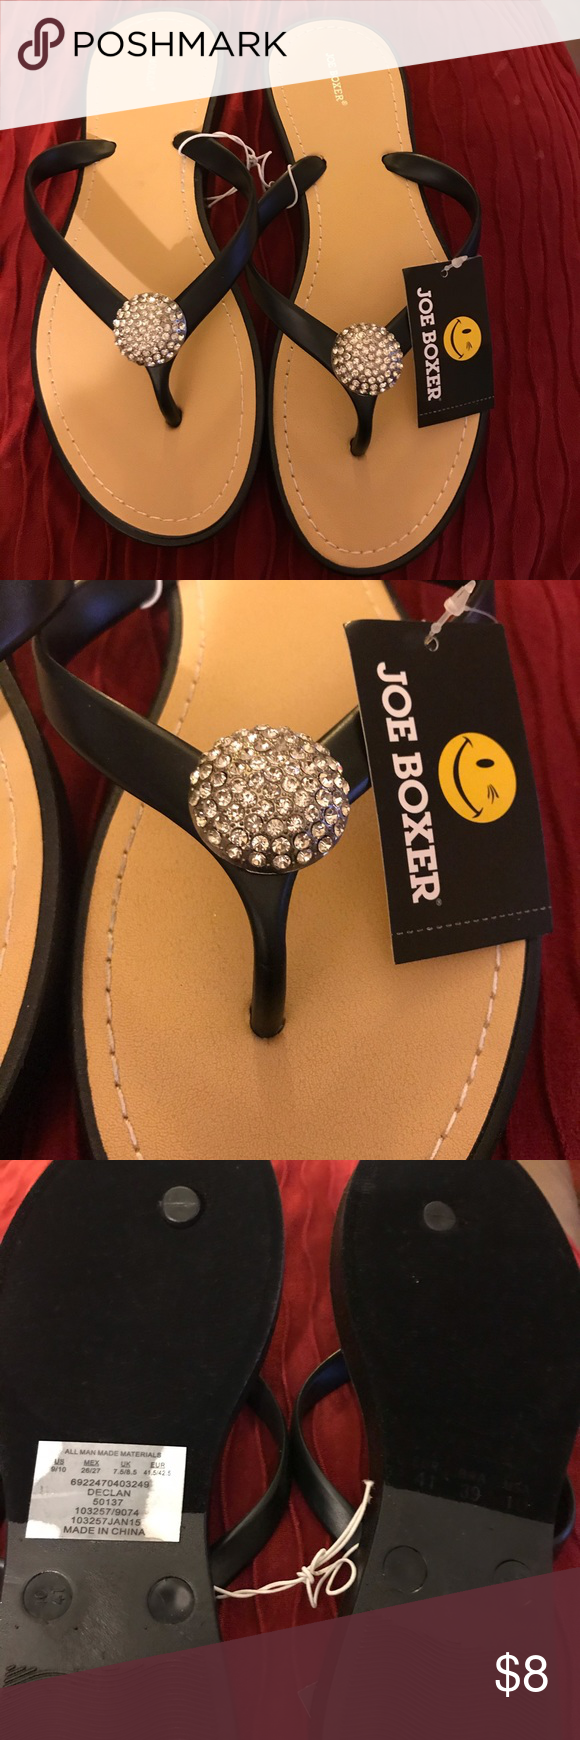 Joe Boxer Flip Flops 9/10 Brand New with rhinestone Joe Boxer Shoes Sandals